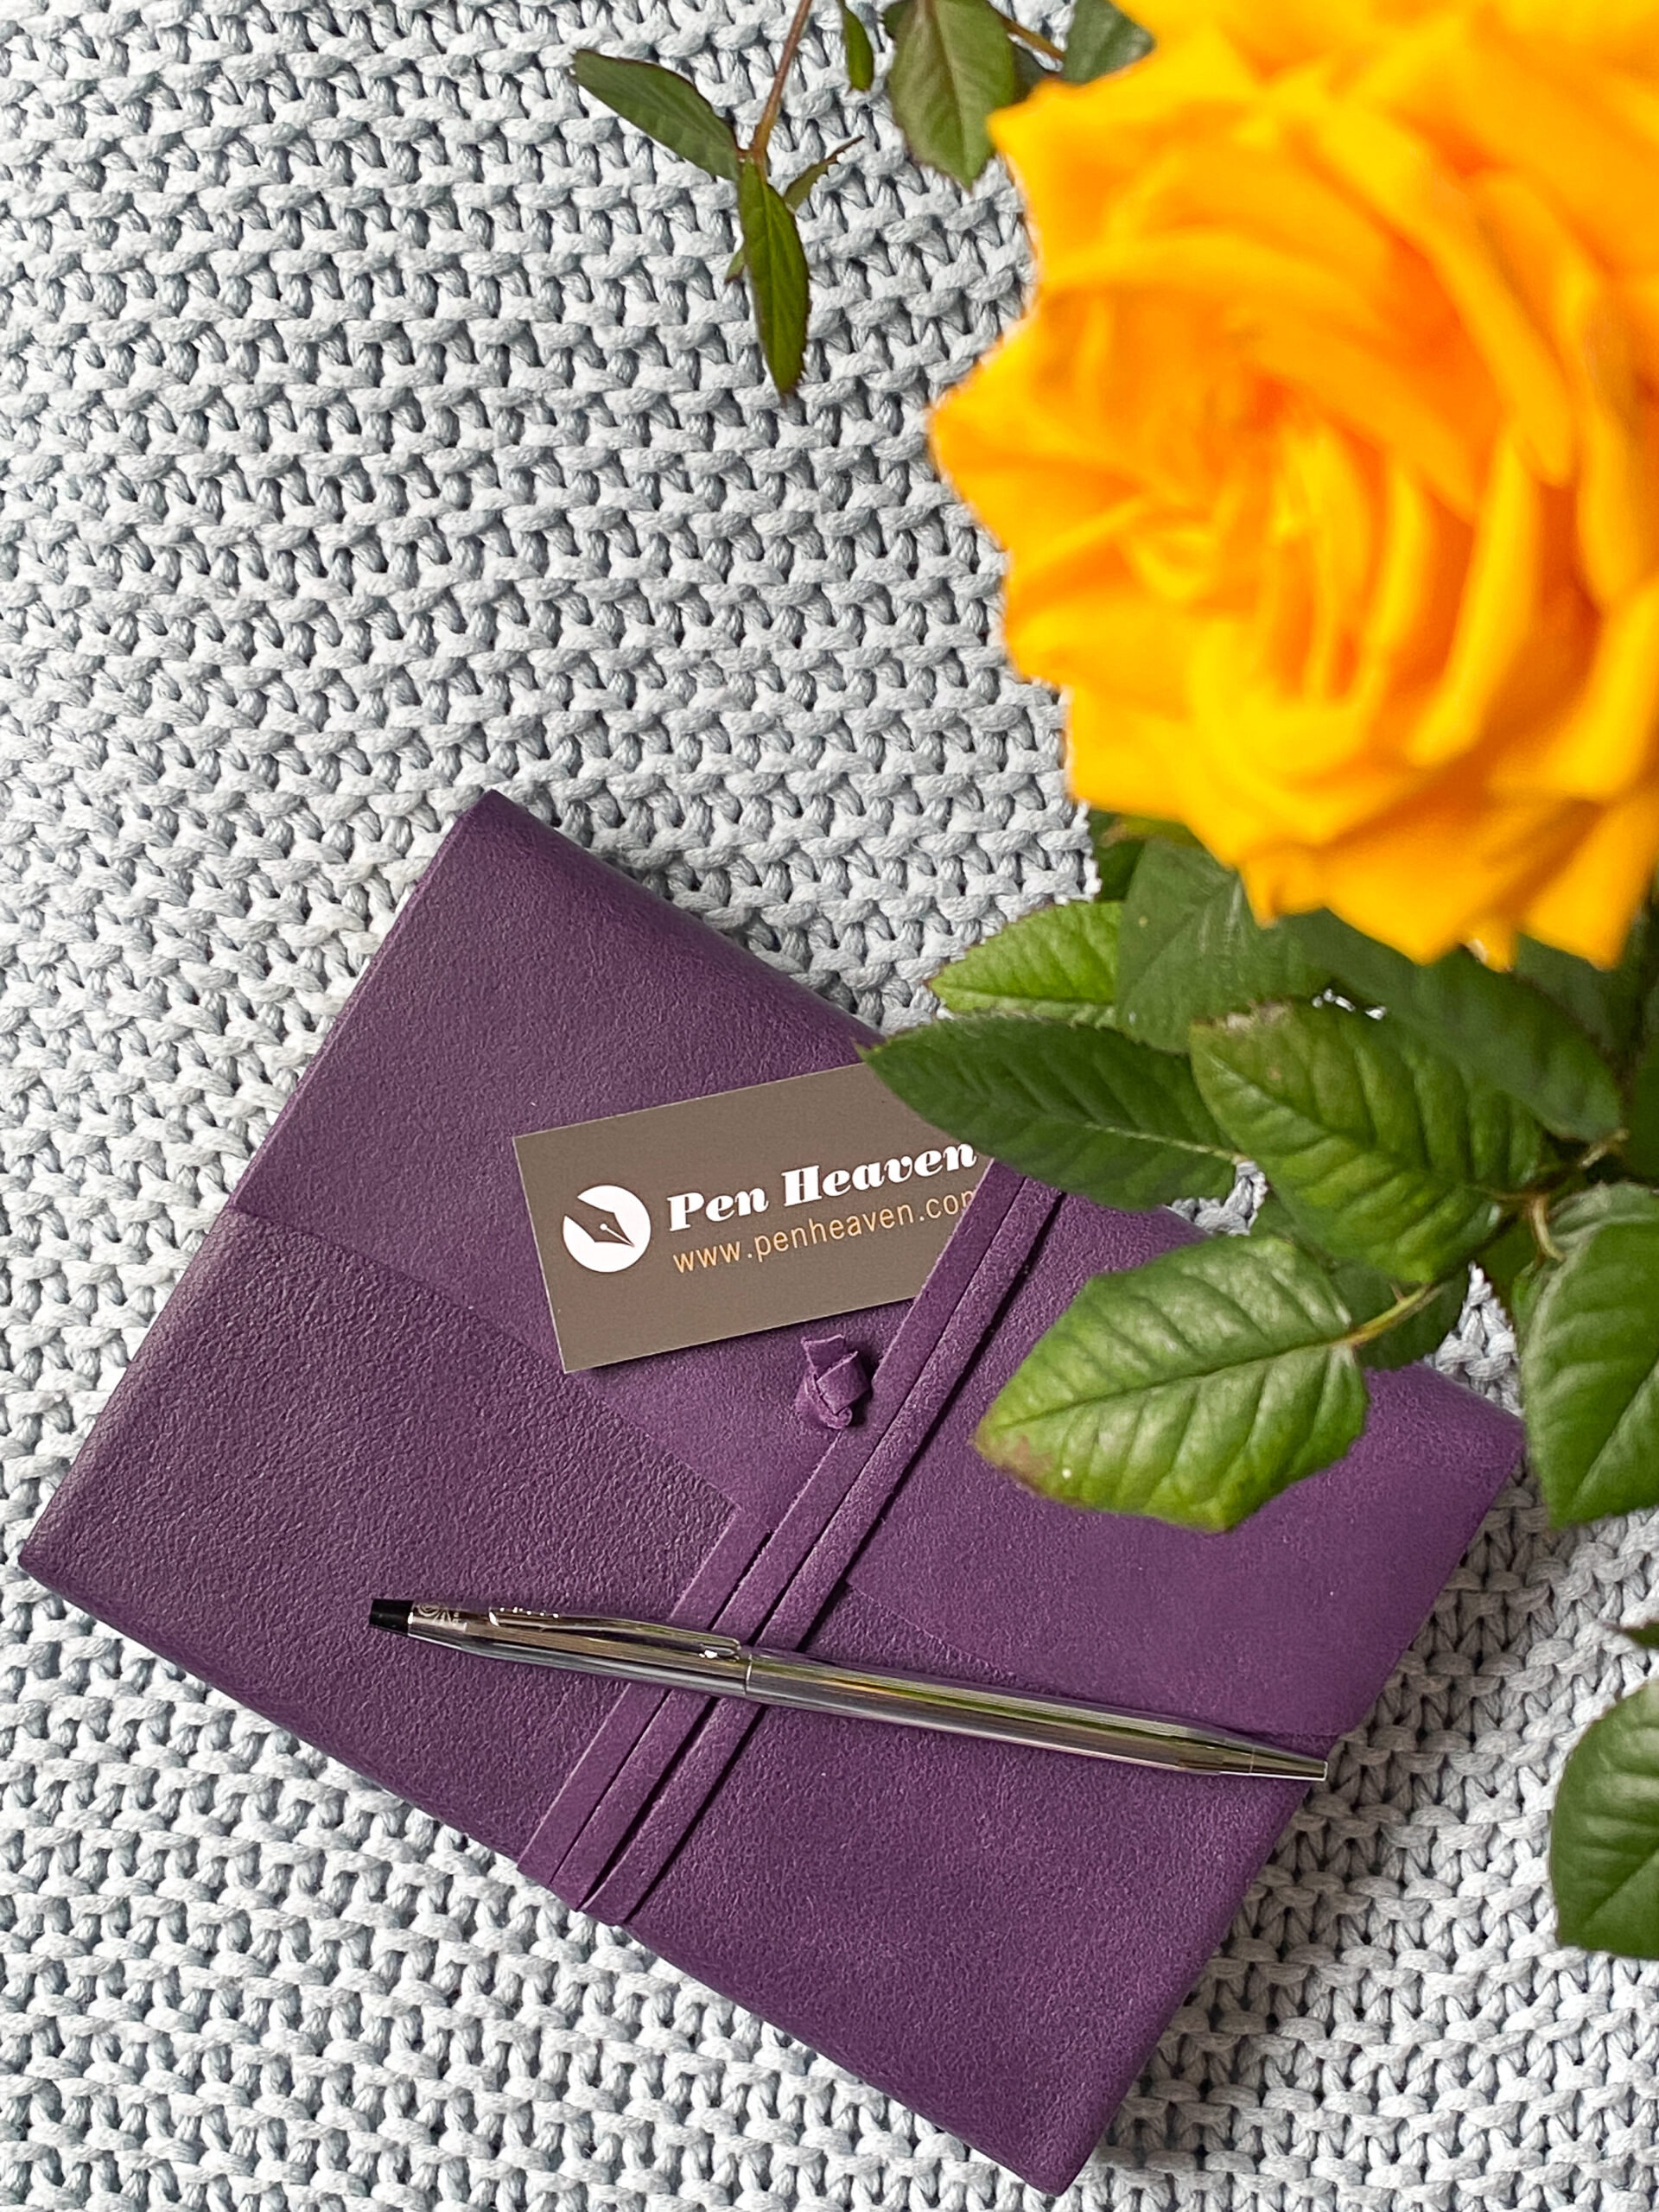 Pen Heaven Personal & Timeless Mother's Day Gift Giveaway The Oliver\'s Madhouse